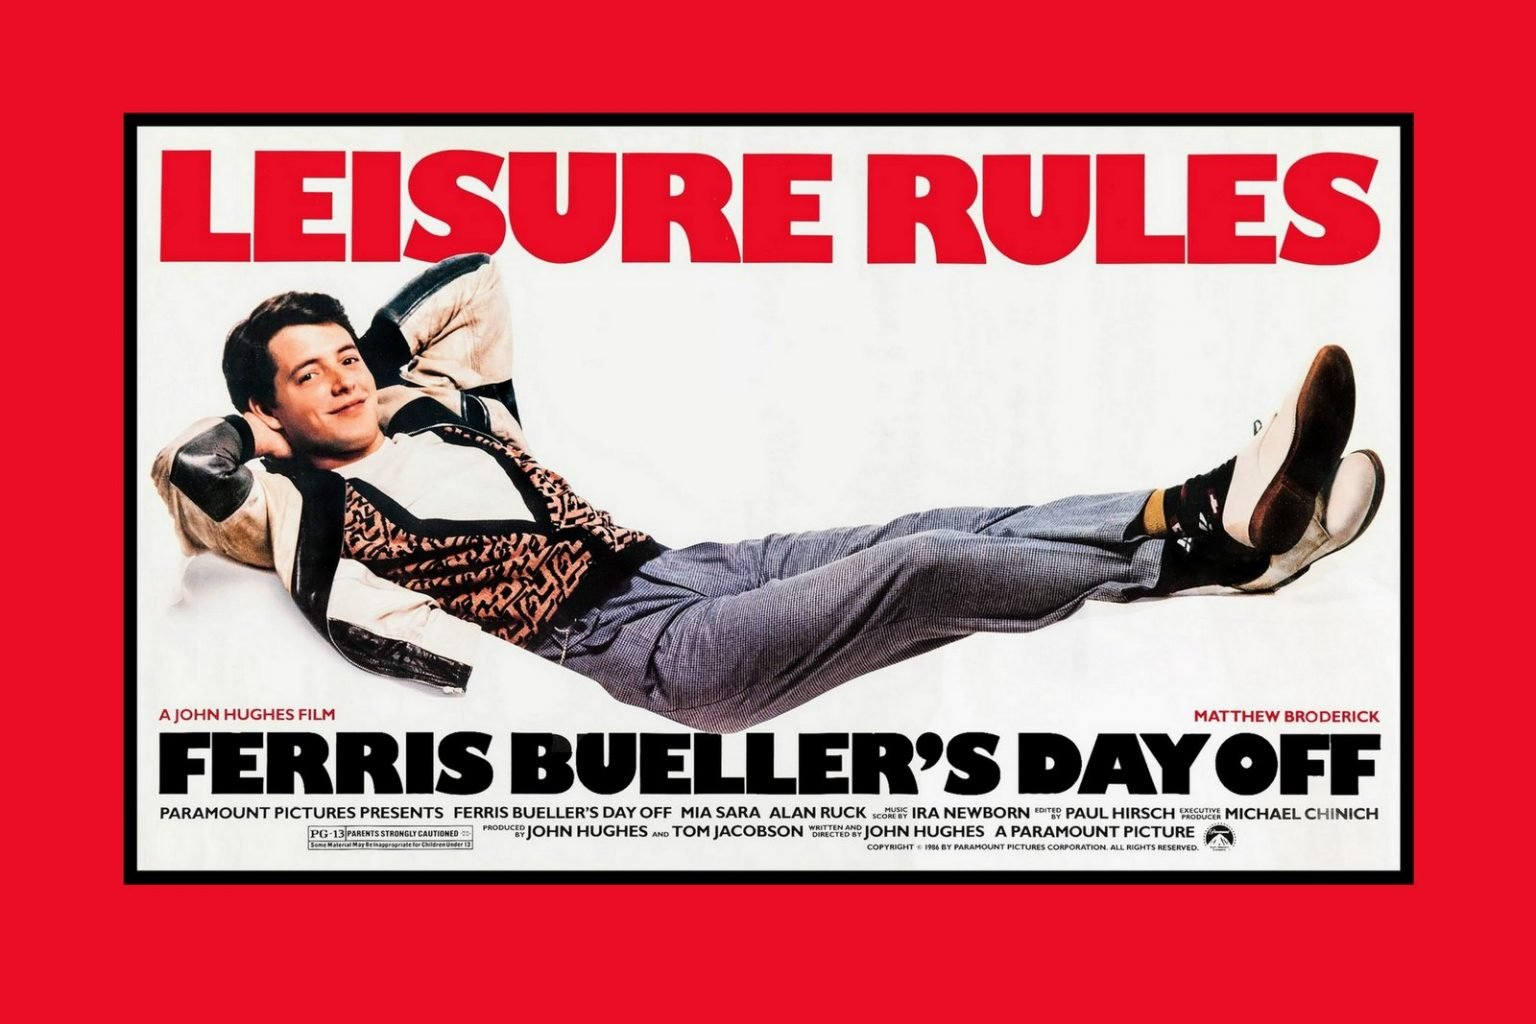 Ferris Bueller's Day Off movie (1986)